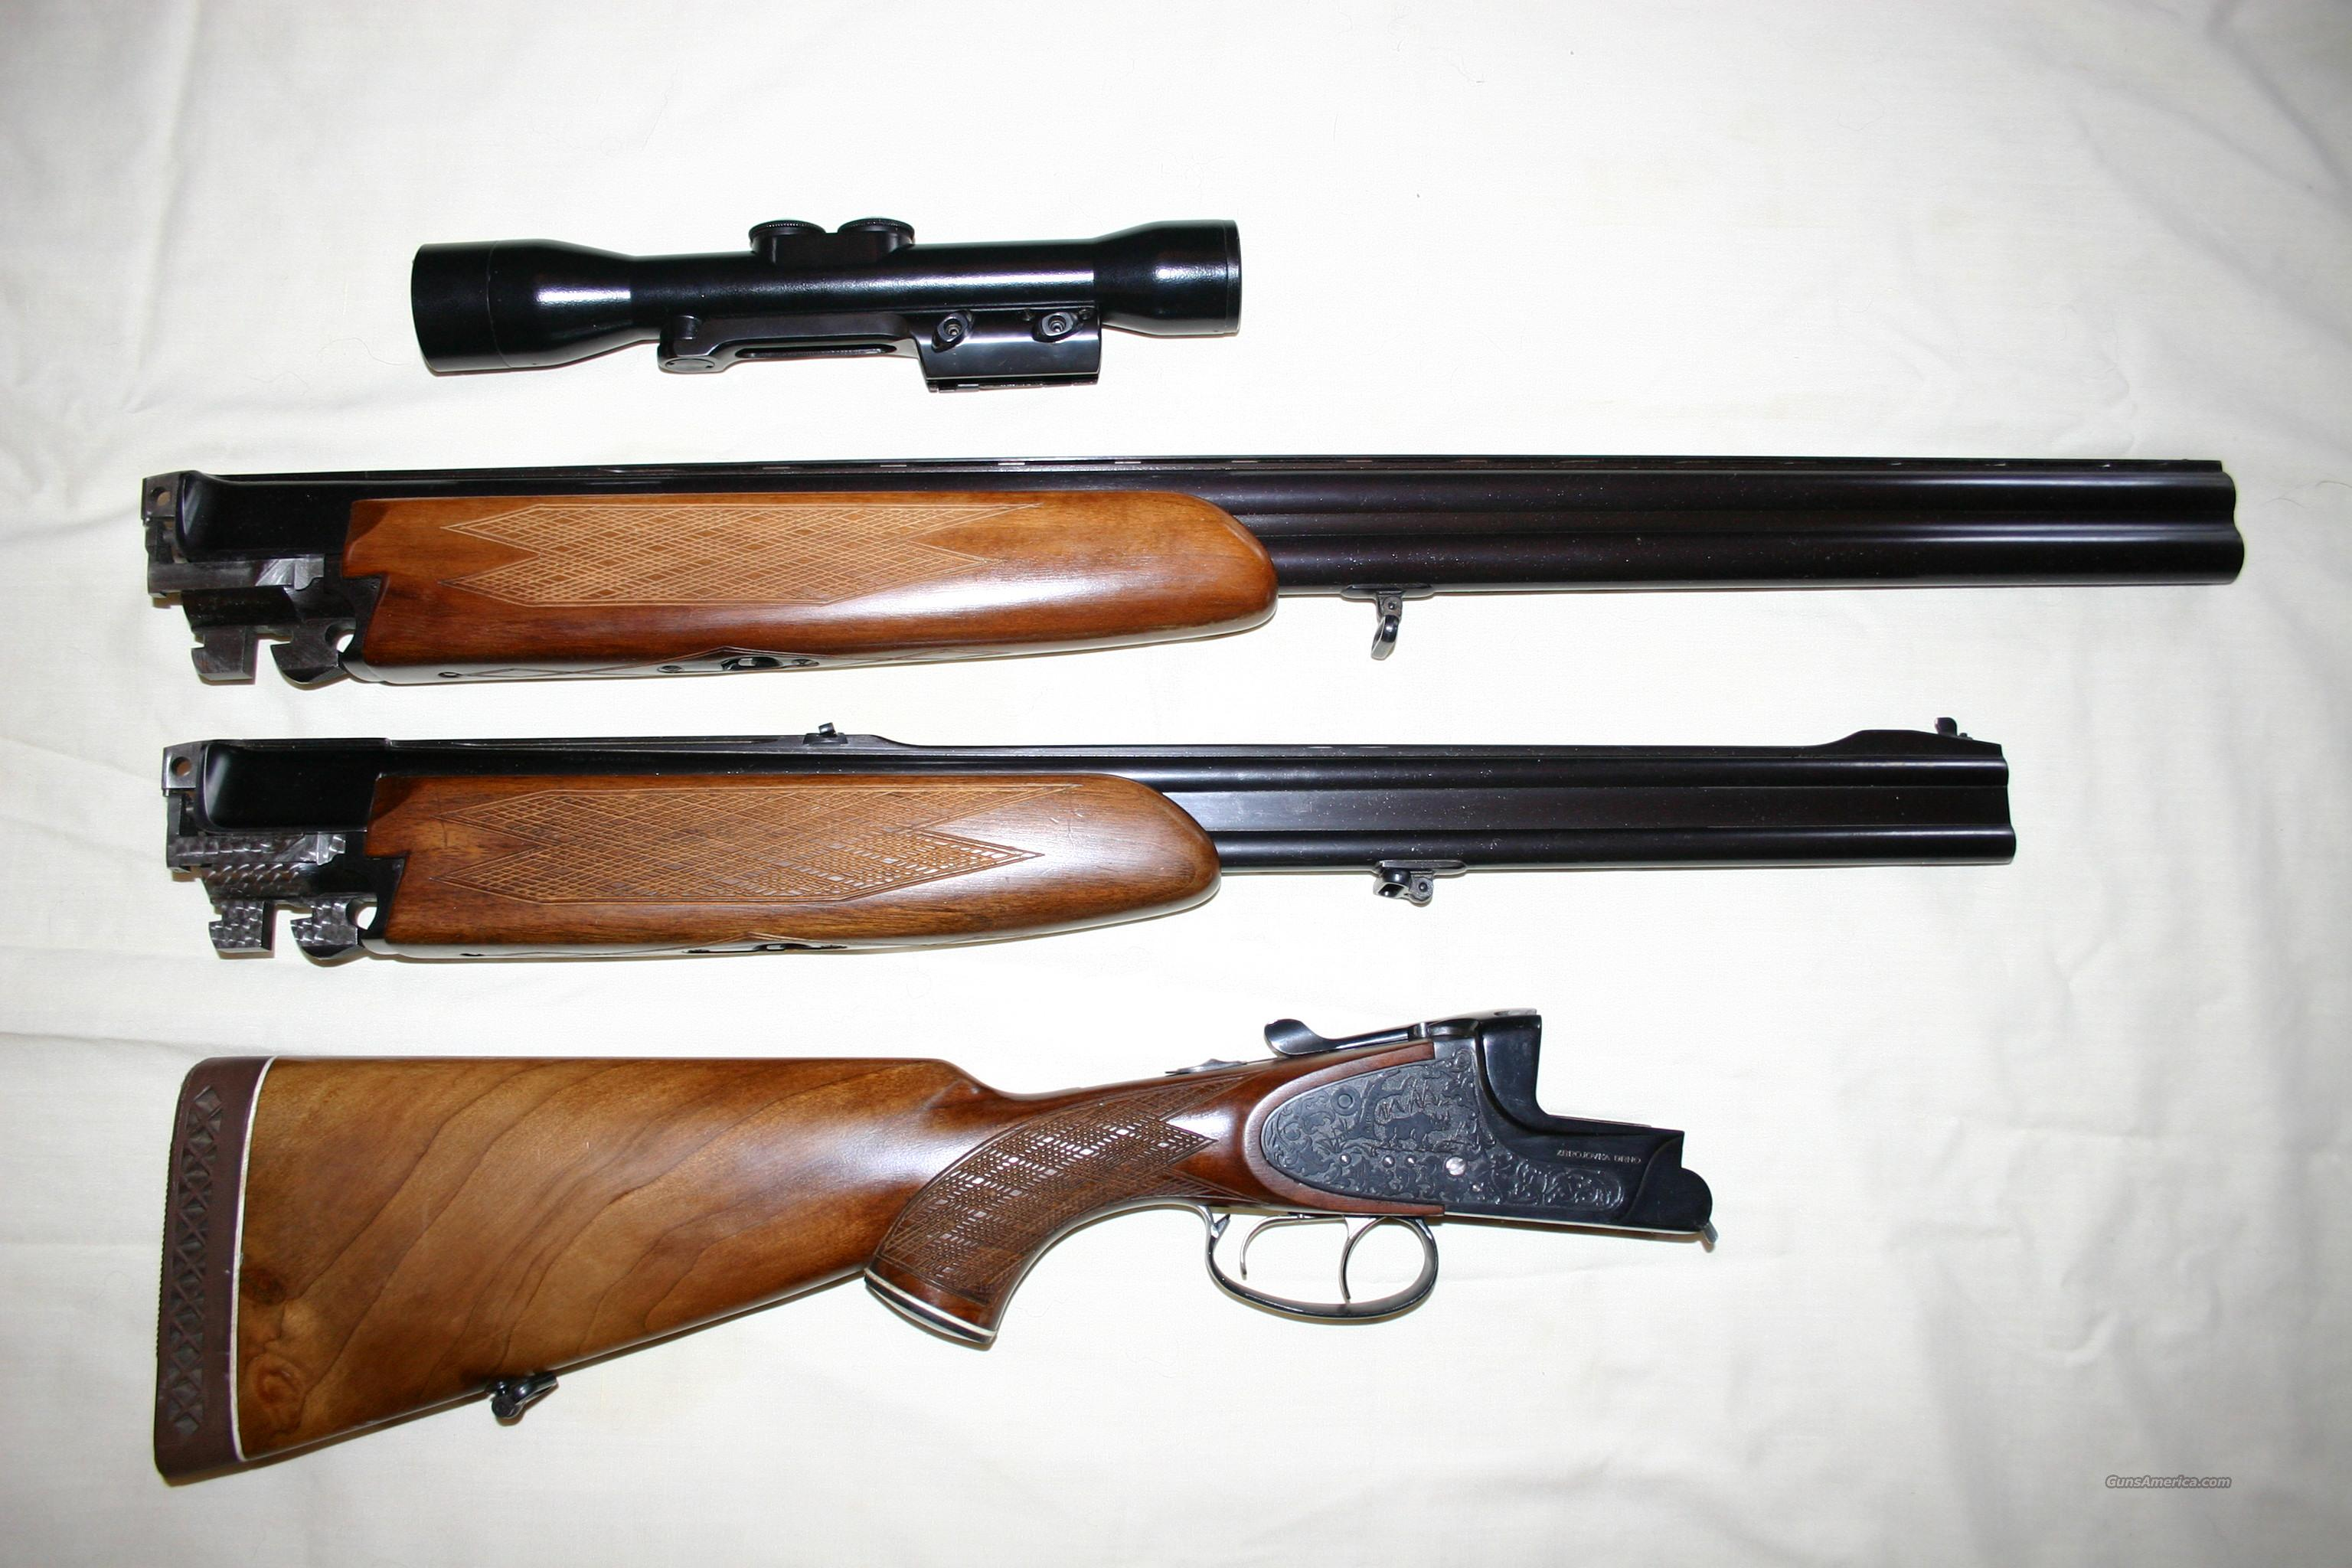 BRNO 375 H&H O/U ENGRAVED DOUBLE RIFLE W/EXTRA 12 GA. BARRELS & 4x Zeiss scope  Guns > Rifles > Double Rifles (Misc.)